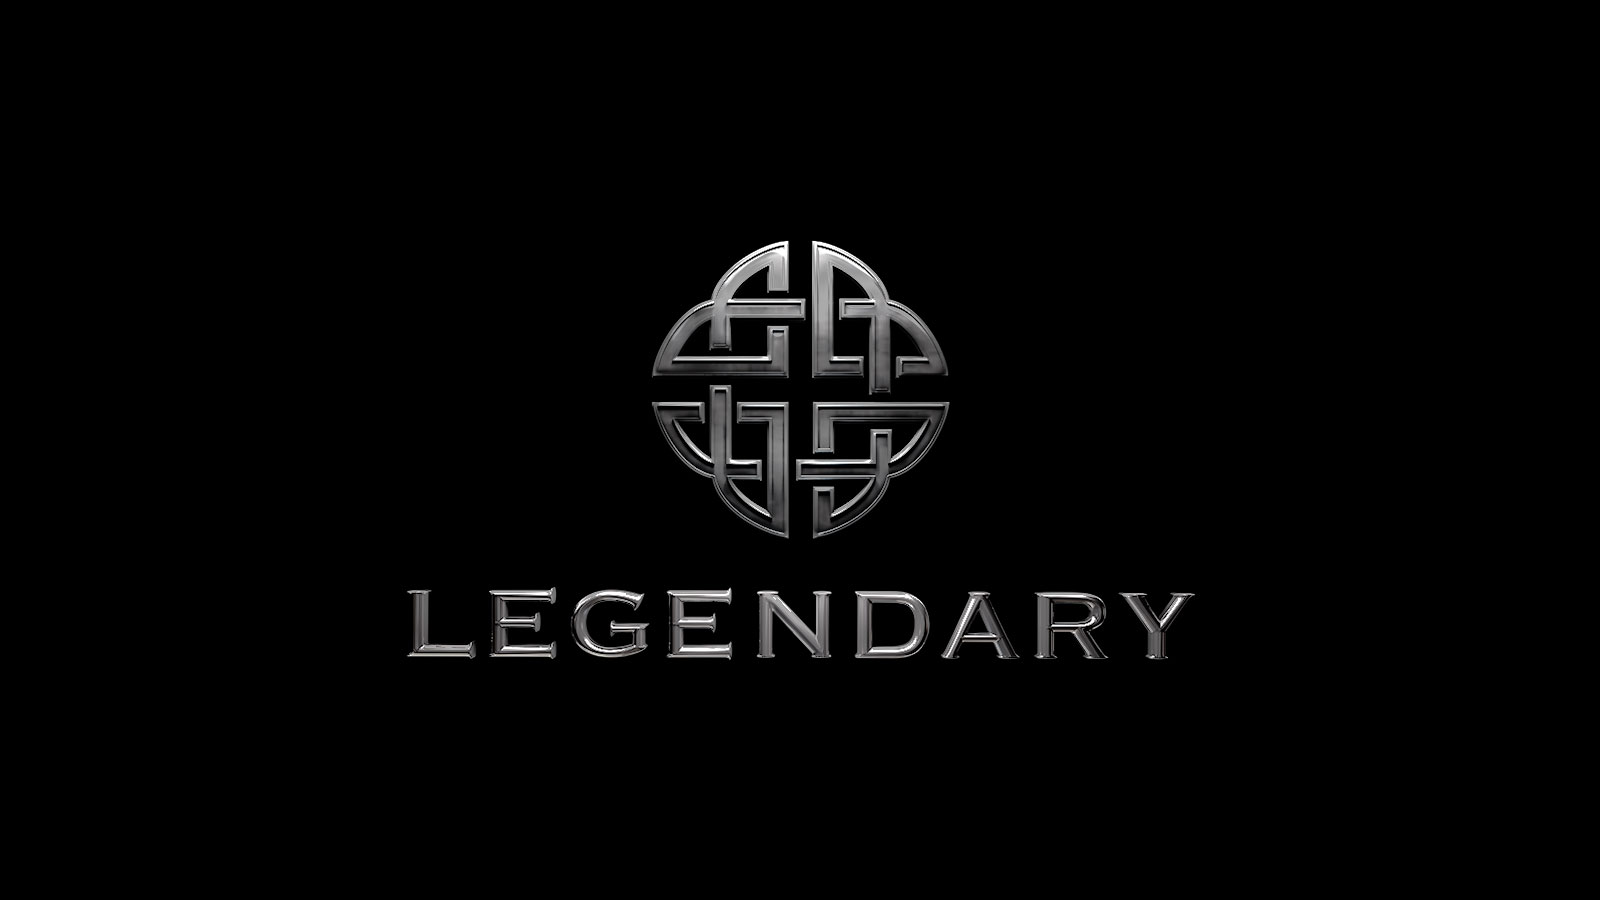 legendary-pictures-CR-08.12.20